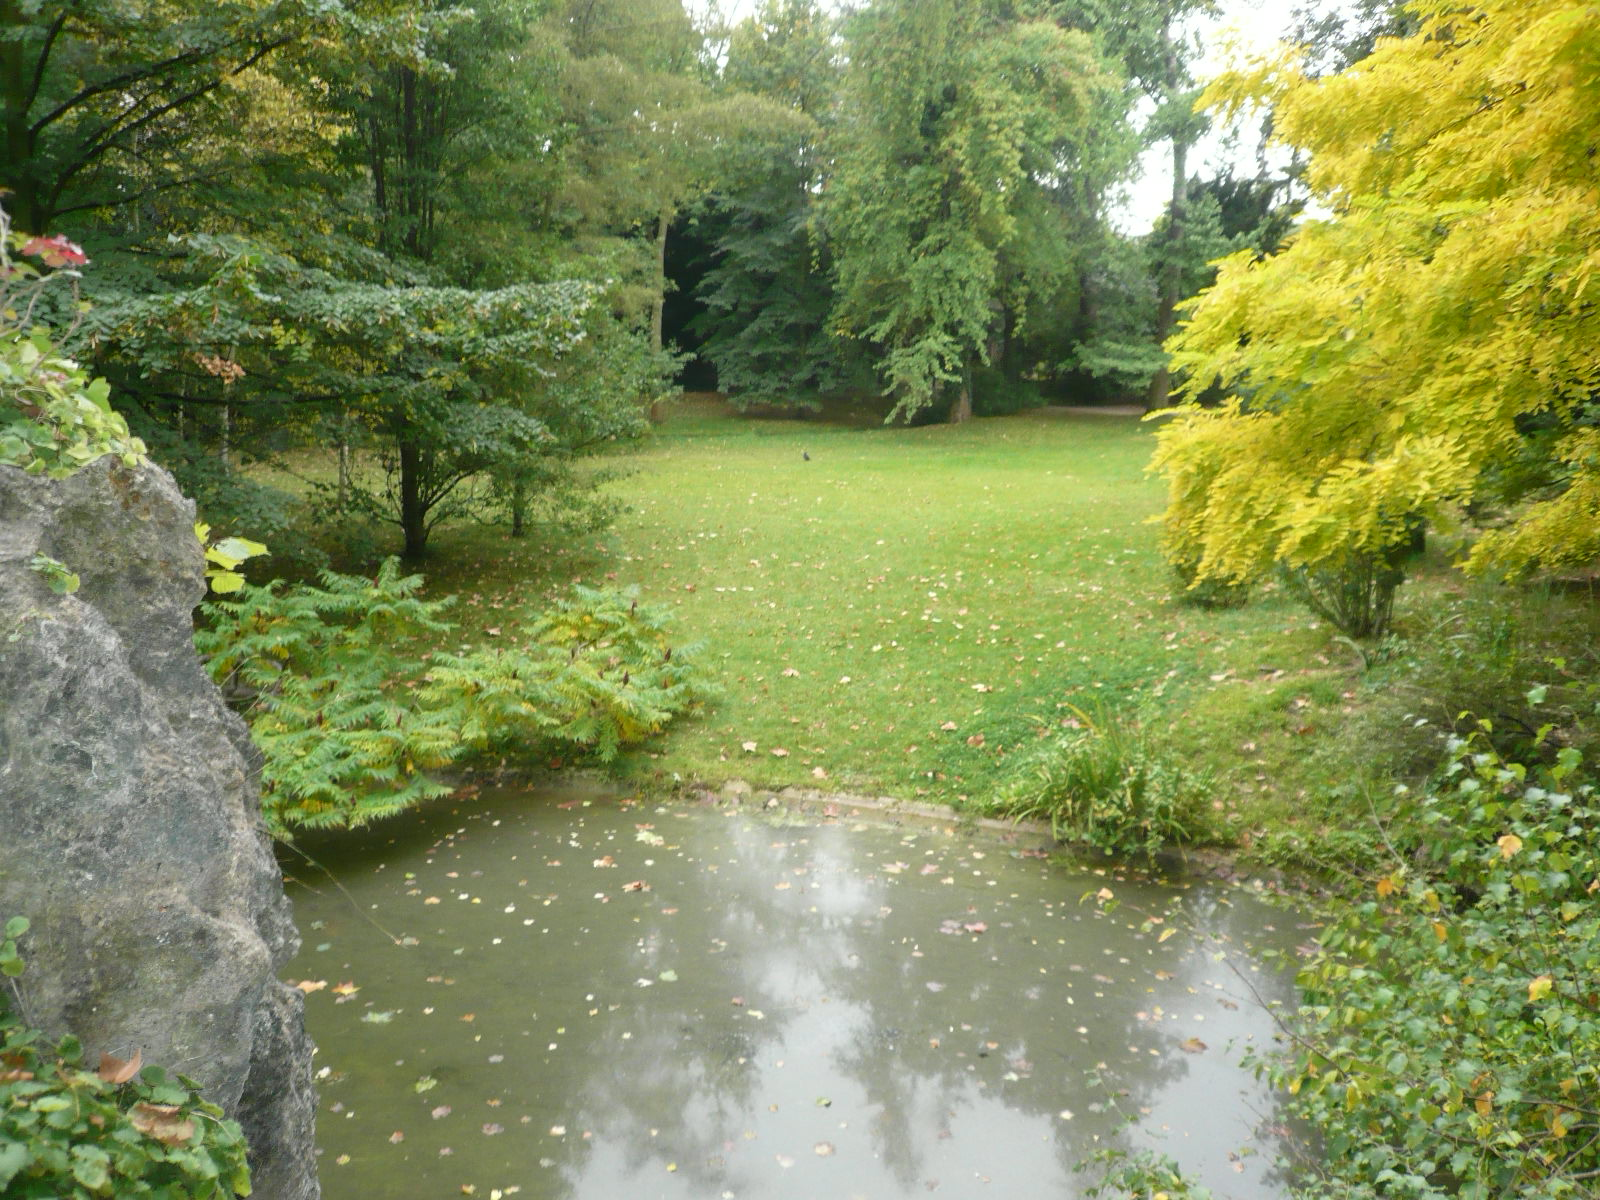 Jardin d 39 albert kahn for Jardin anglais guingamp